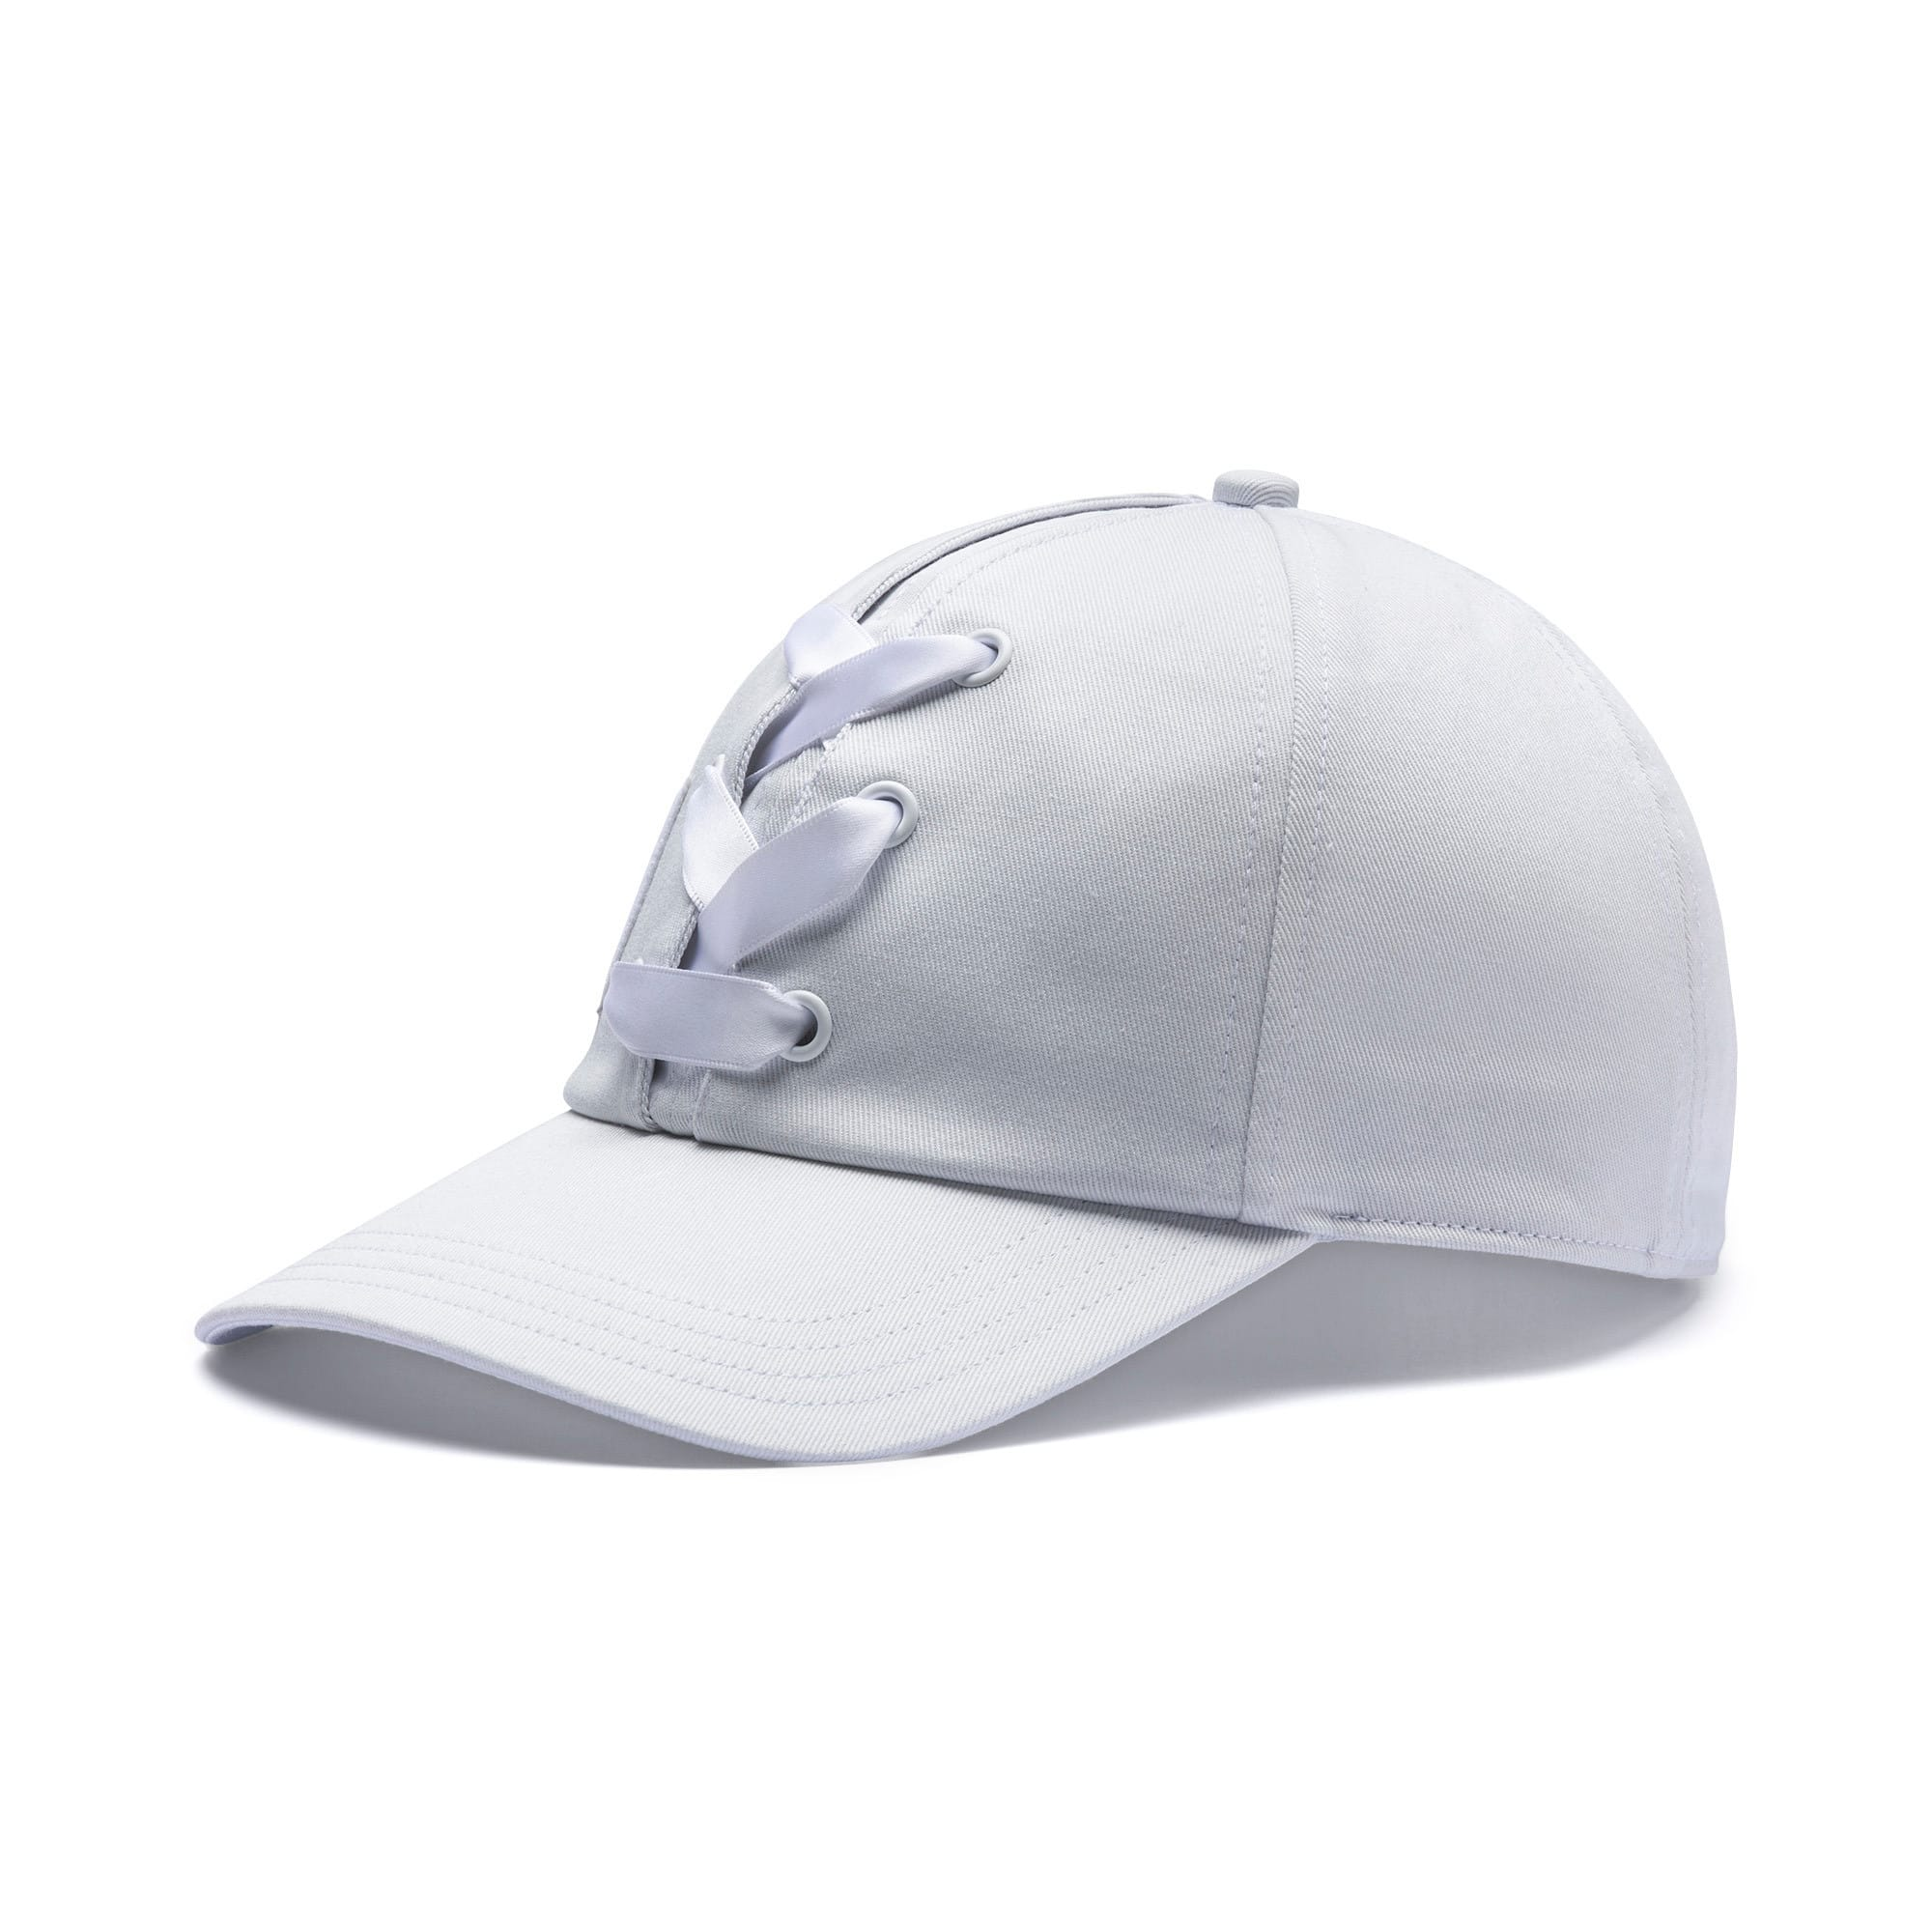 Thumbnail 1 of Women's Crush Cap, Puma White, medium